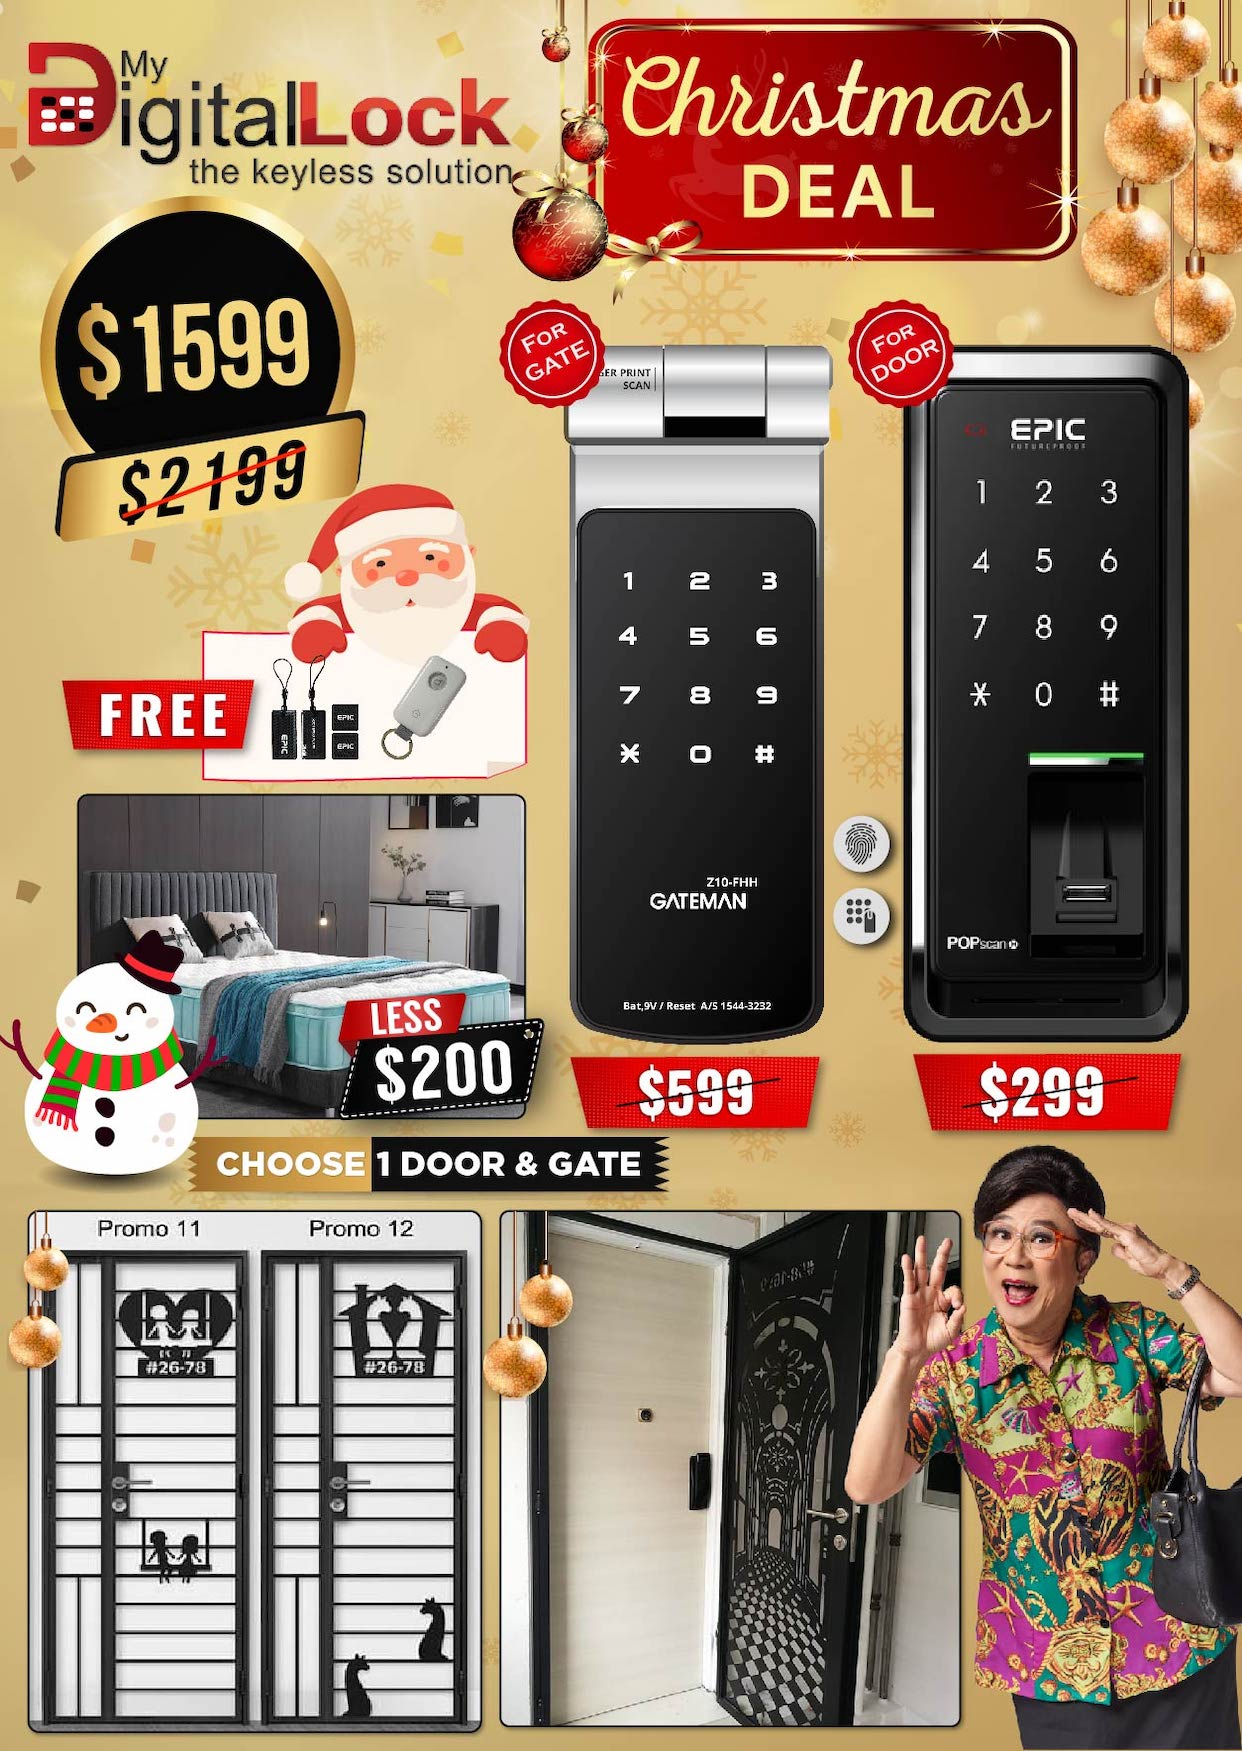 My-Digital-Lock-Door-Gate-Digital-Lock-Christmas-Promotions-2019-2